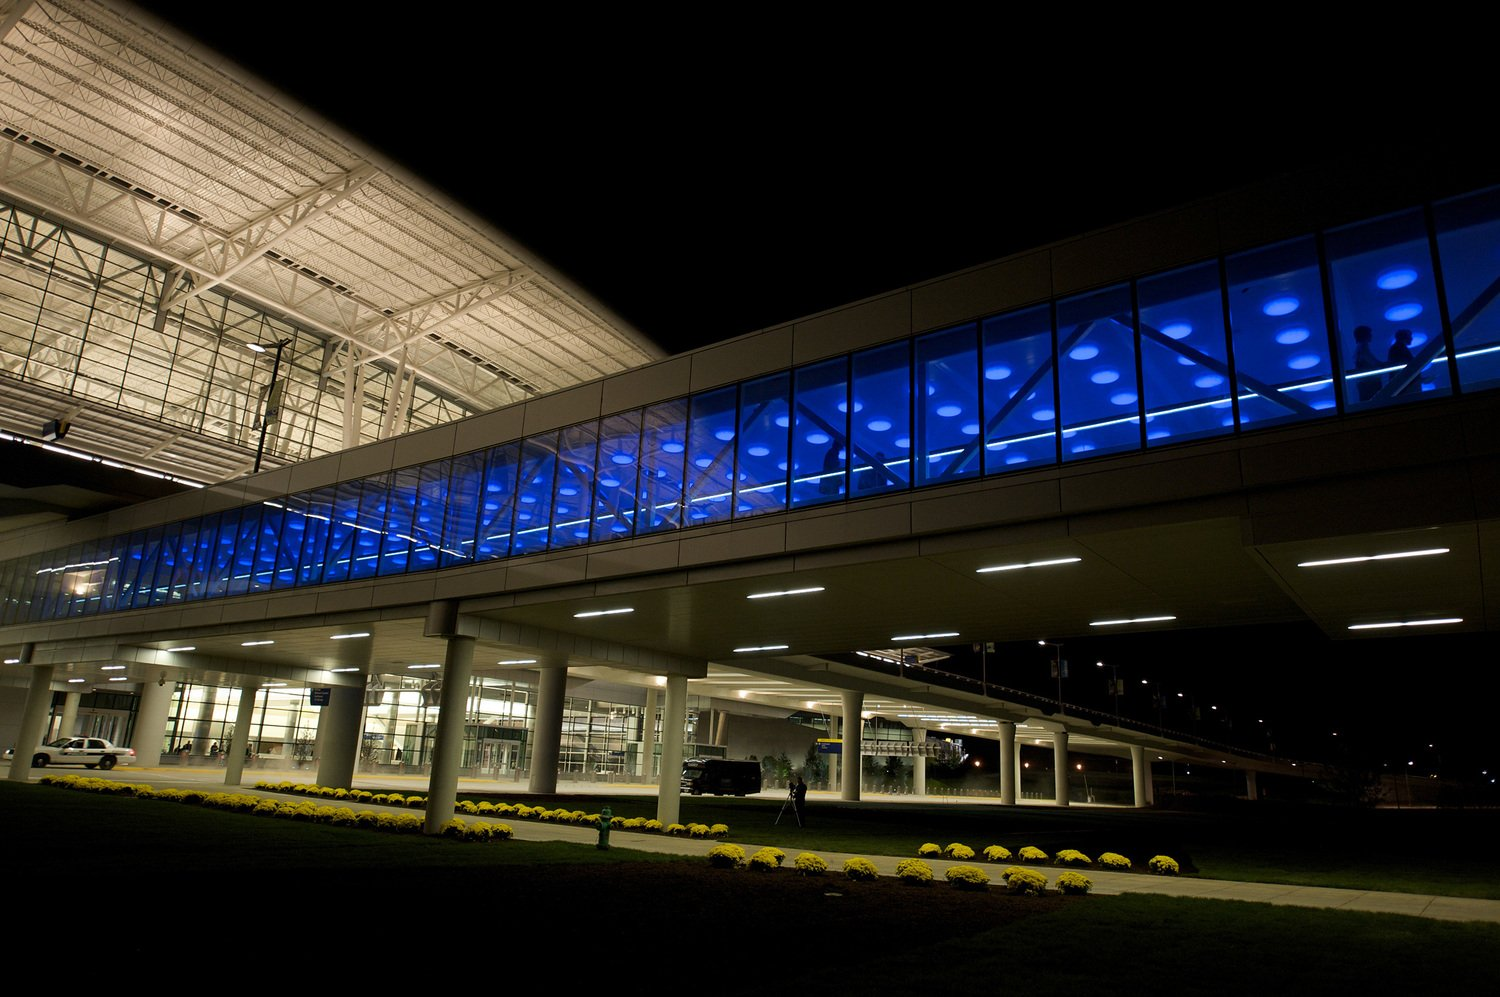 Outside photo of blue LED lights at Indianapolis airport